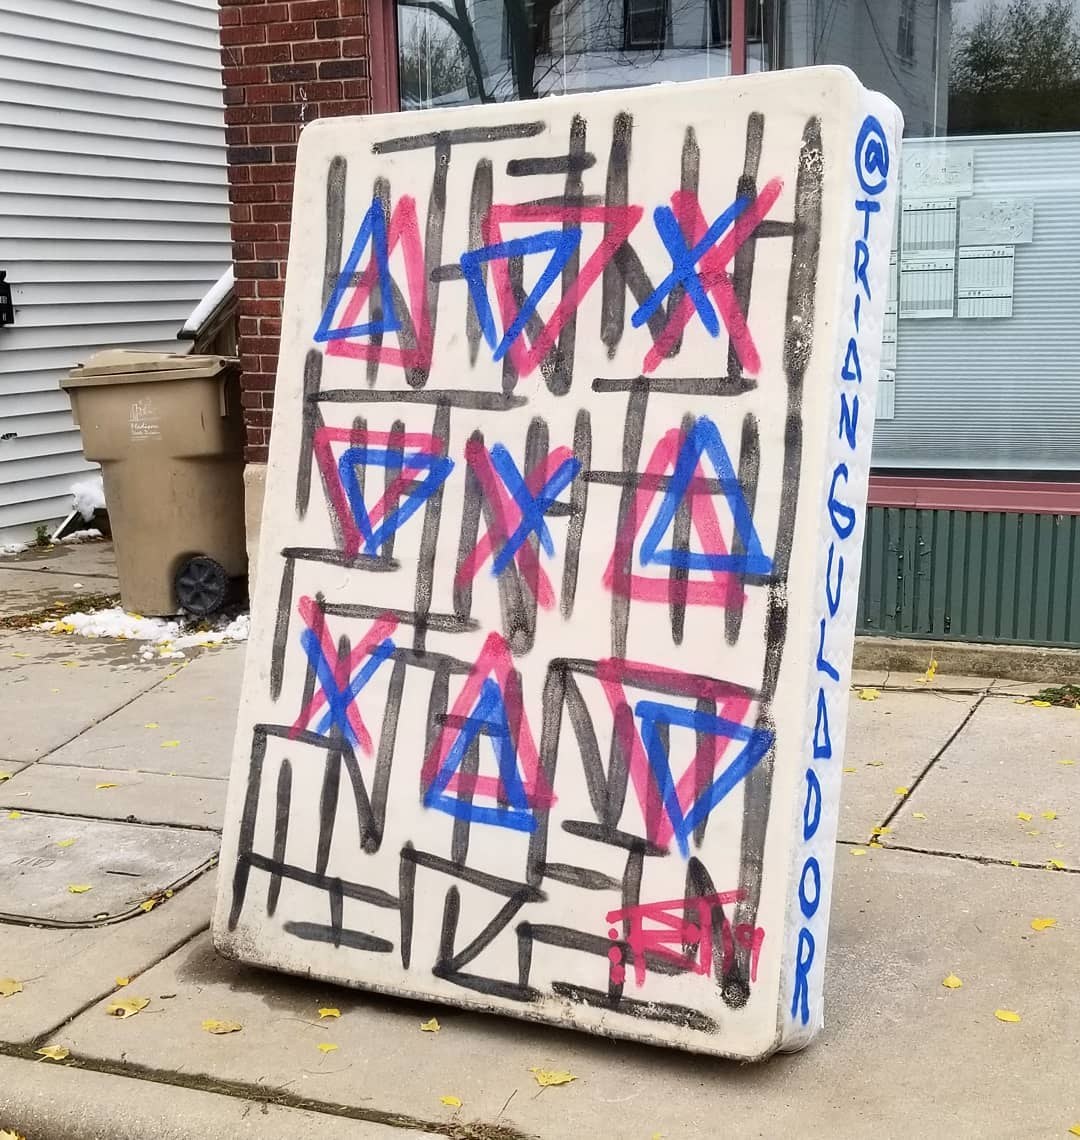 Image contains street art outdoors sidewalk on mattress